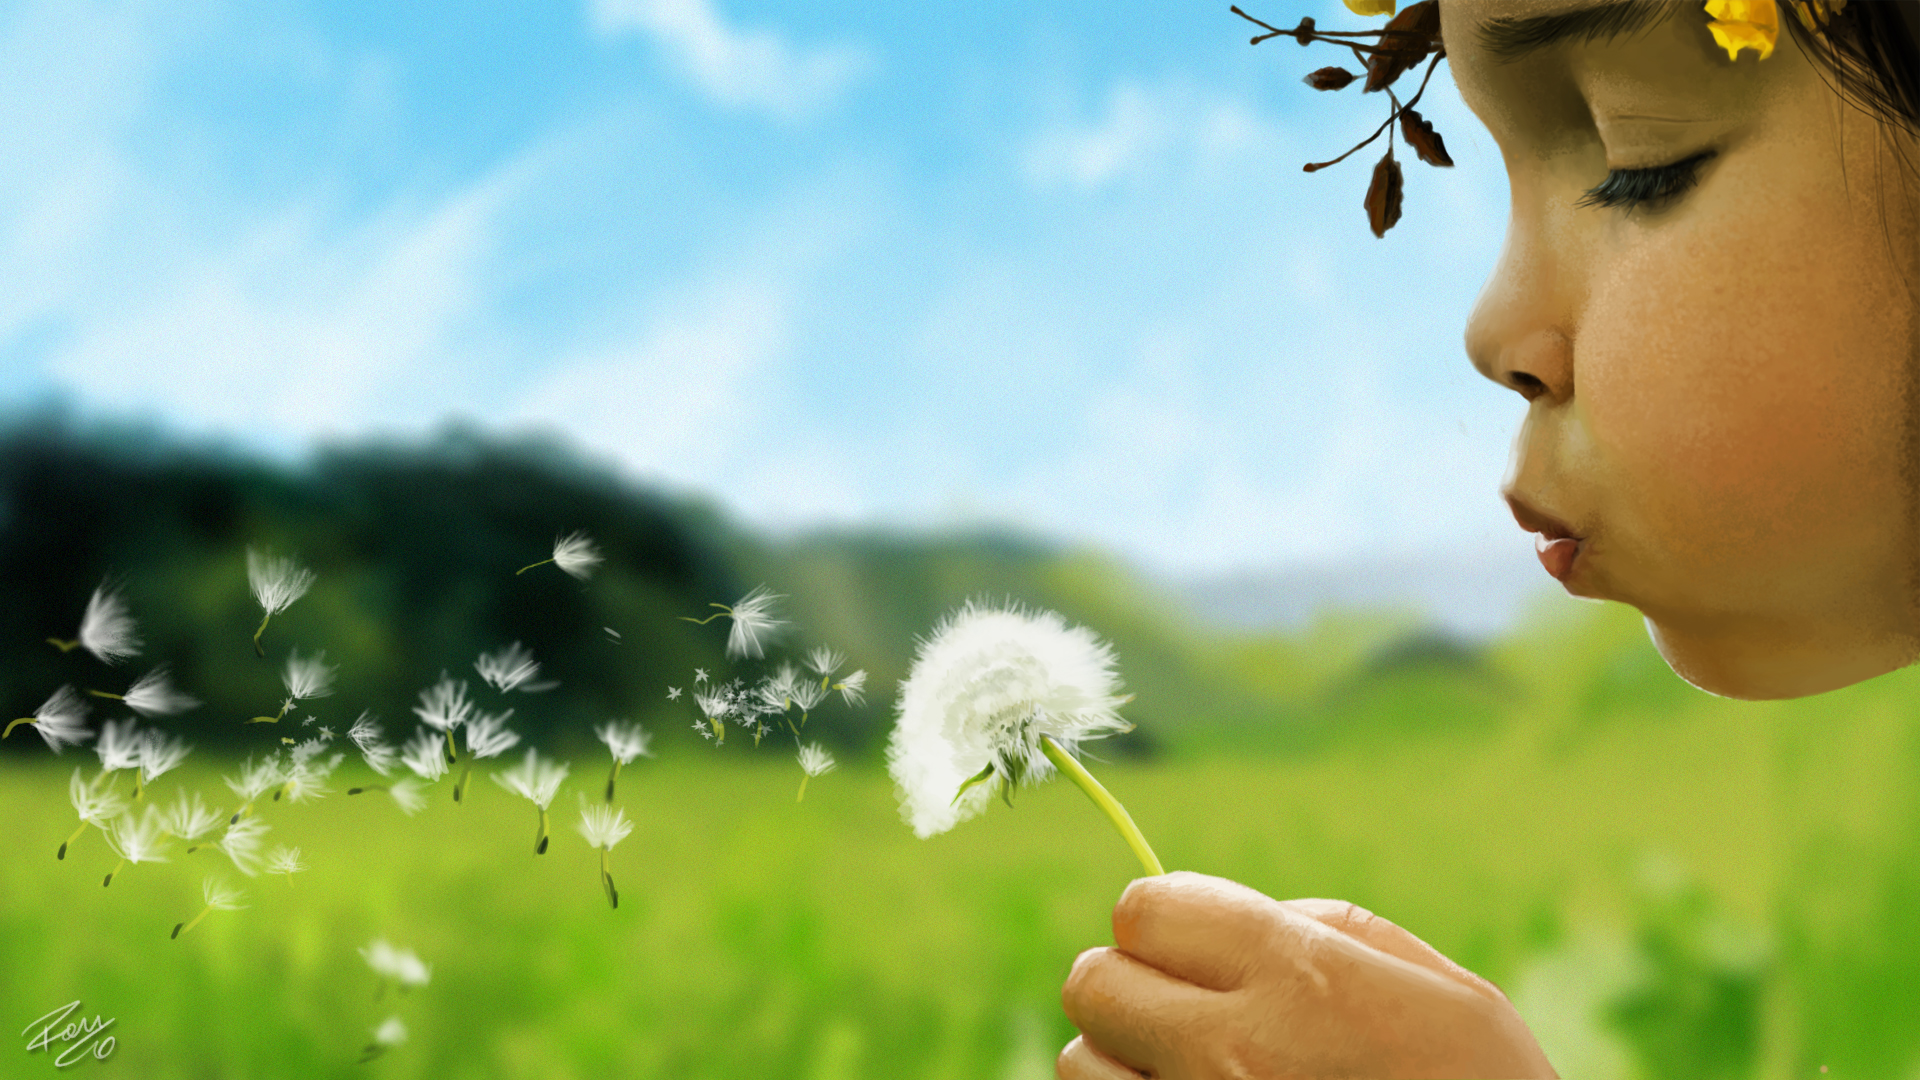 Little girl blowing a dandelion by RamonFelinto on DeviantArt